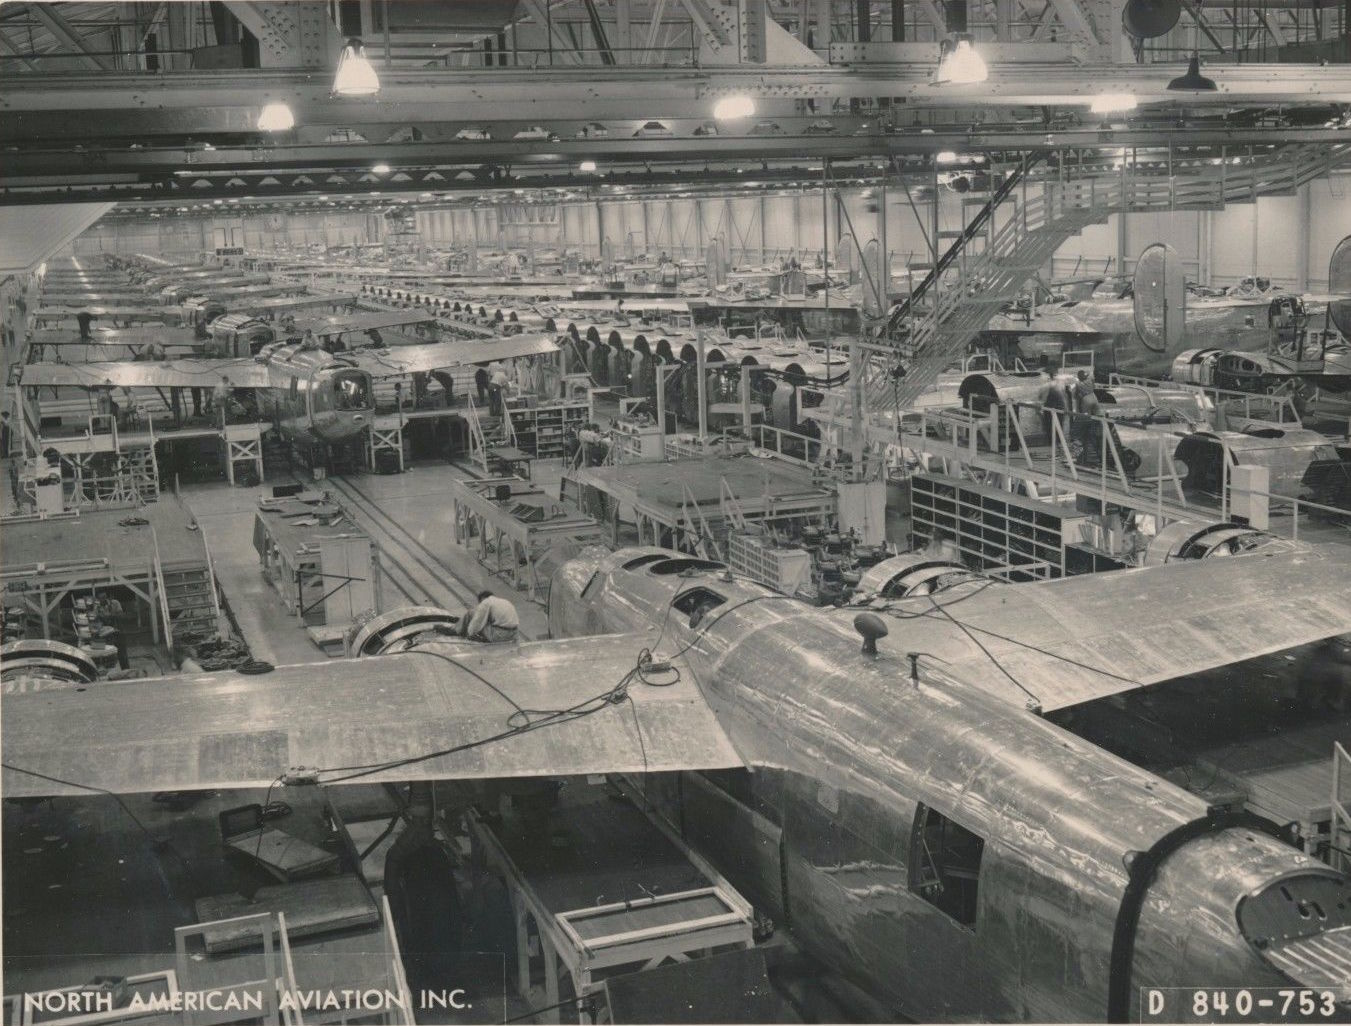 The Assembly lines at North American ran 24 hours a day, with workers divided into three 8-hour shifts, Liberators are seen here exiting the Western end of the facility at night.